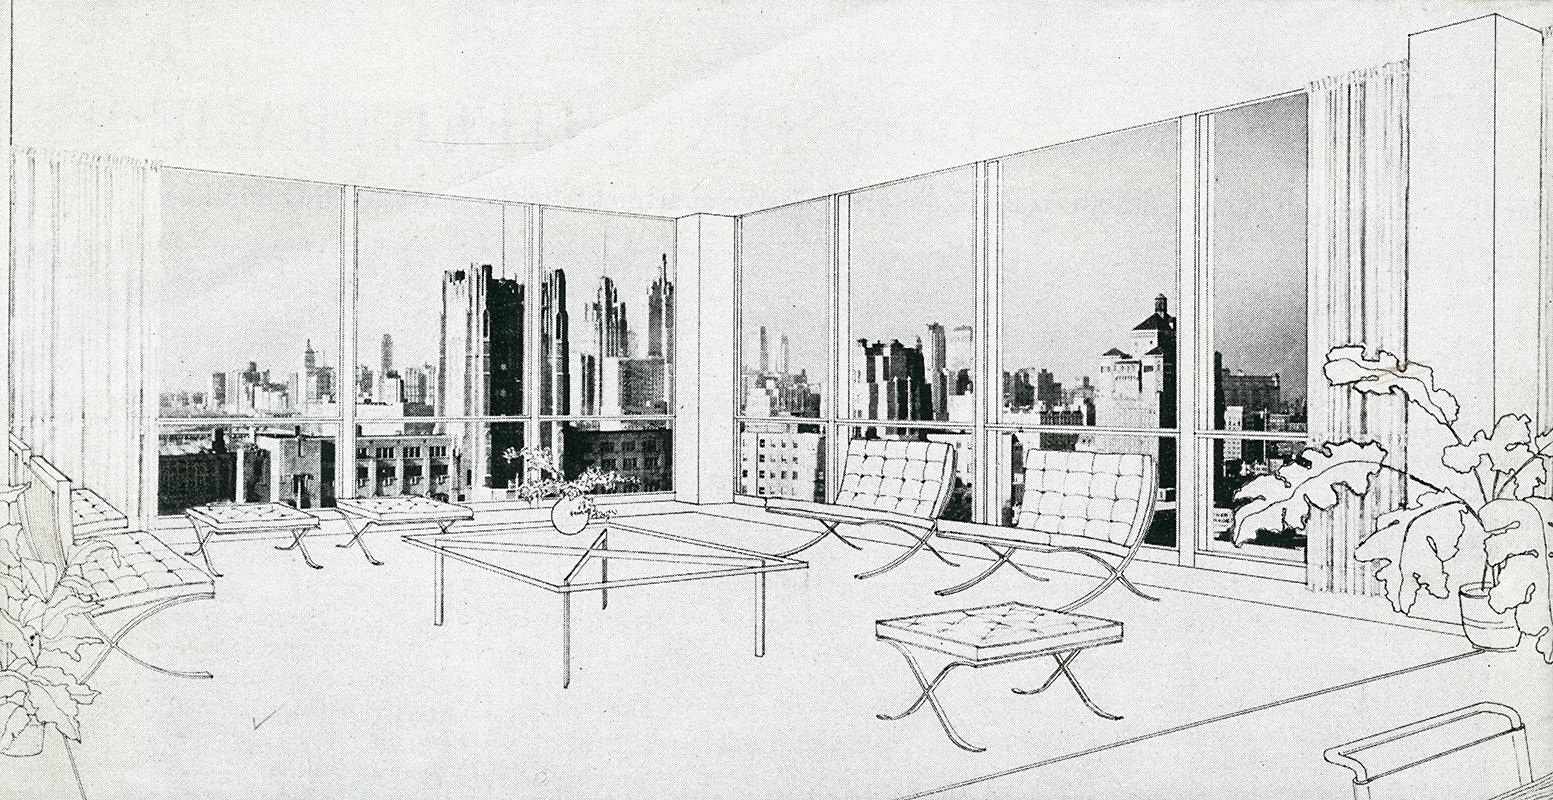 Floor Plans With Photos Mies Van Der Rohe Architectural Forum Jan 1950 76 Rndrd